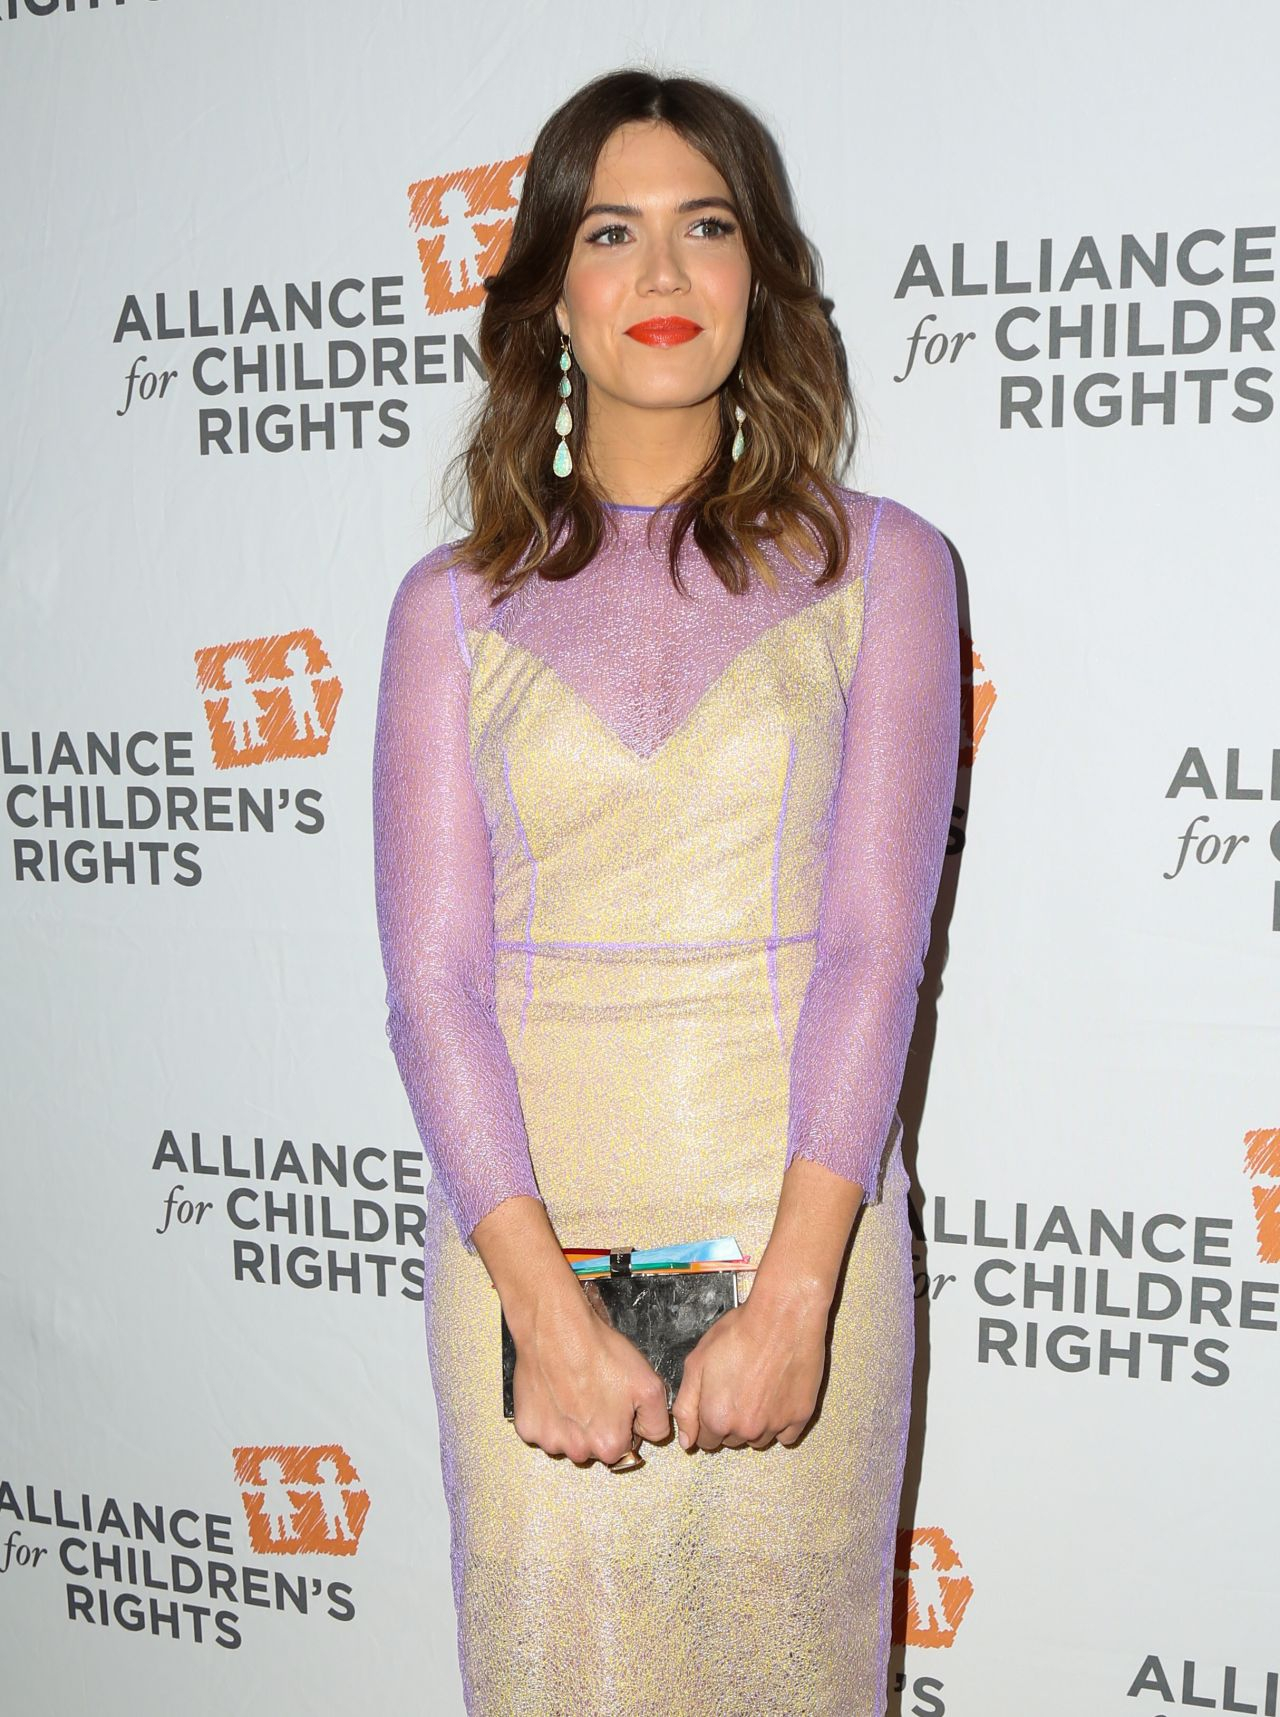 Mandy moore alliance for childrens rights celebration in beverly hills nudes (62 photos)